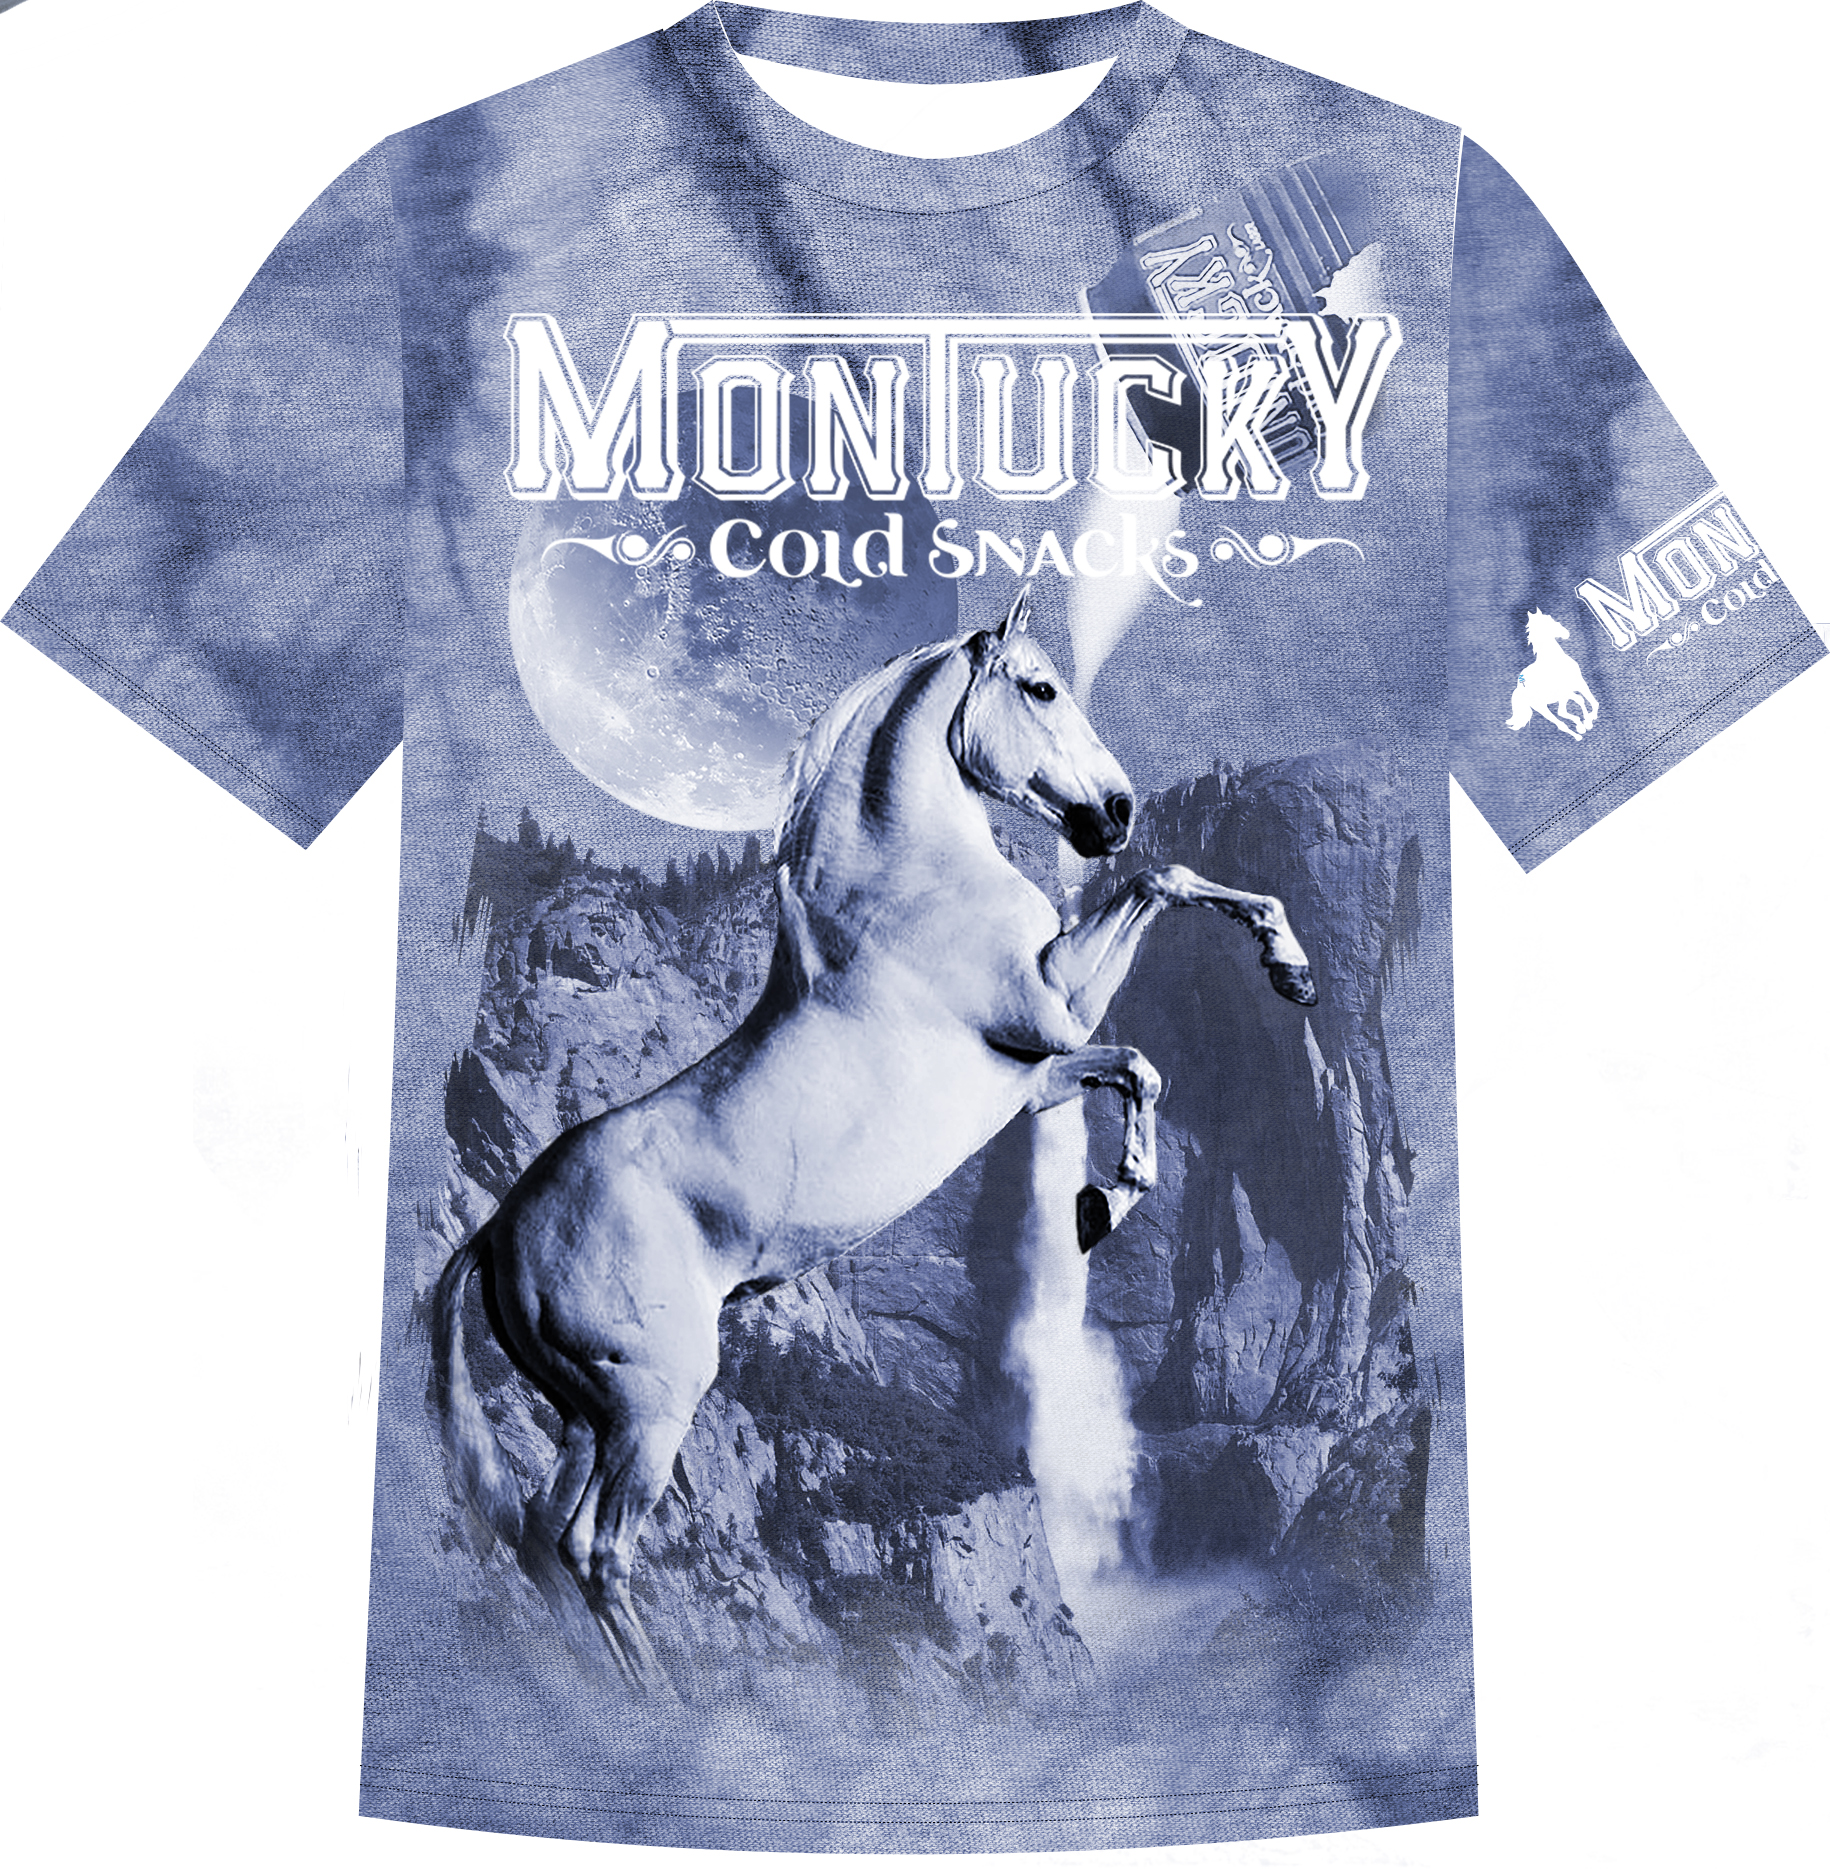 """submission to montucky cold snacks """"gas station t-shirt"""" competition in 2017, it won, and was produced and distributed by montucky cold snacks."""